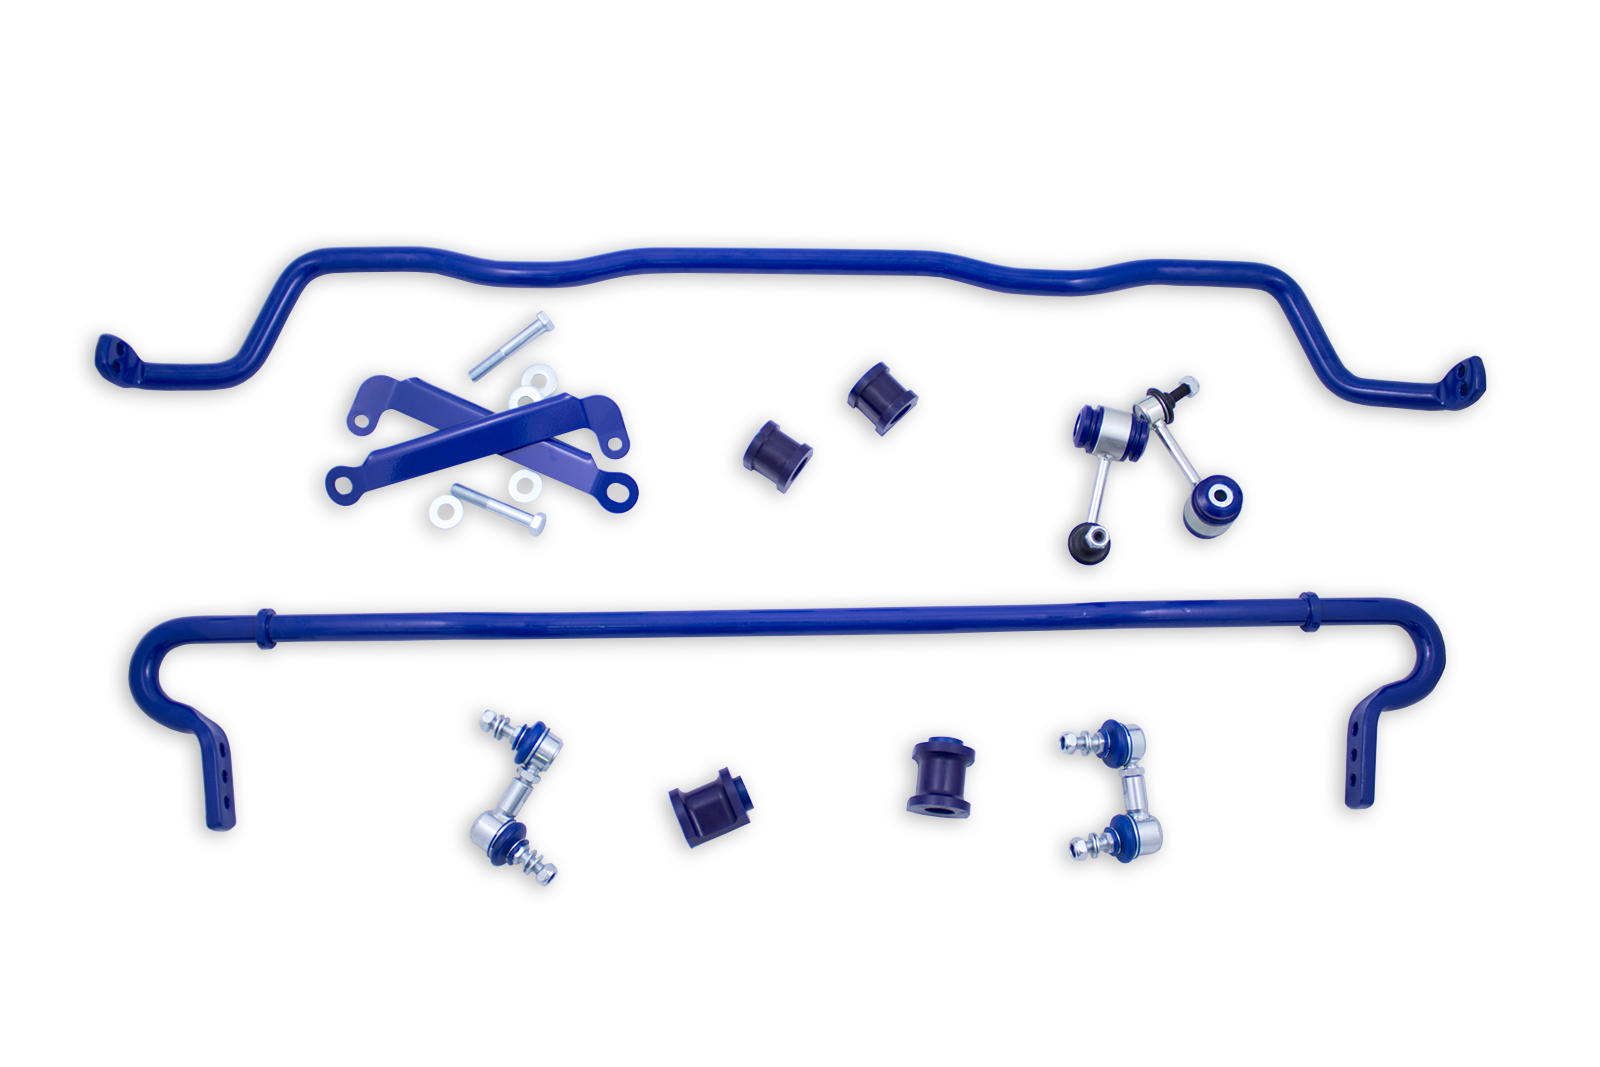 Superpro Suspension Parts And Poly Bushings Forsubaru